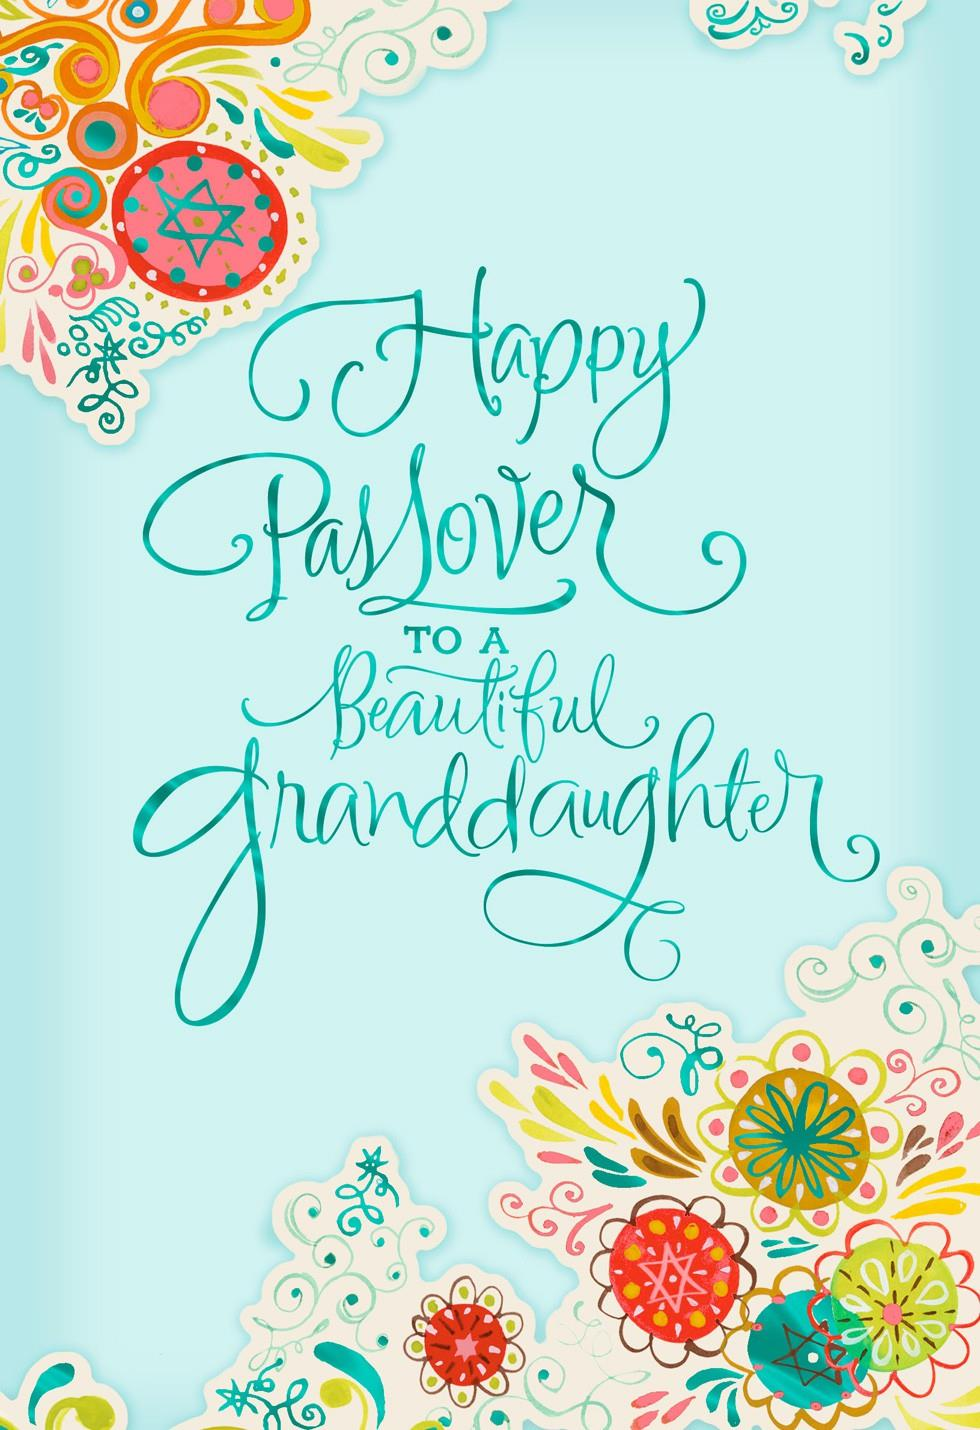 Beautiful granddaughter passover card greeting cards hallmark beautiful granddaughter passover card m4hsunfo